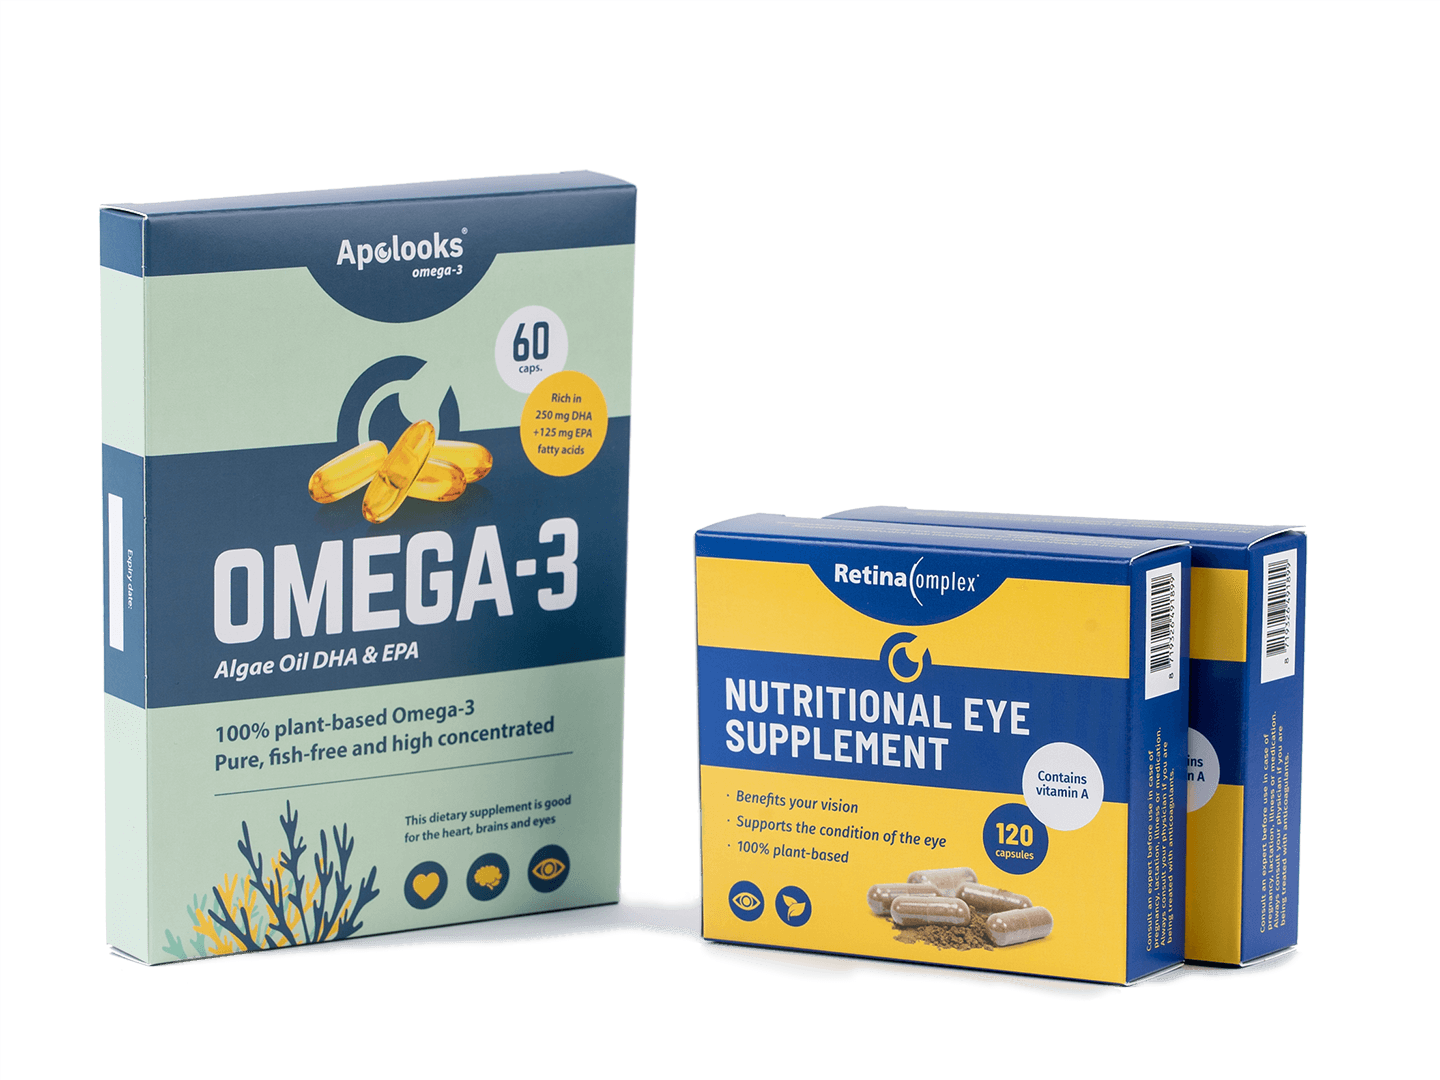 Combideals - Retinacomplex® & Apolooks® Omega-3 Algae oil - Bundle Discounts